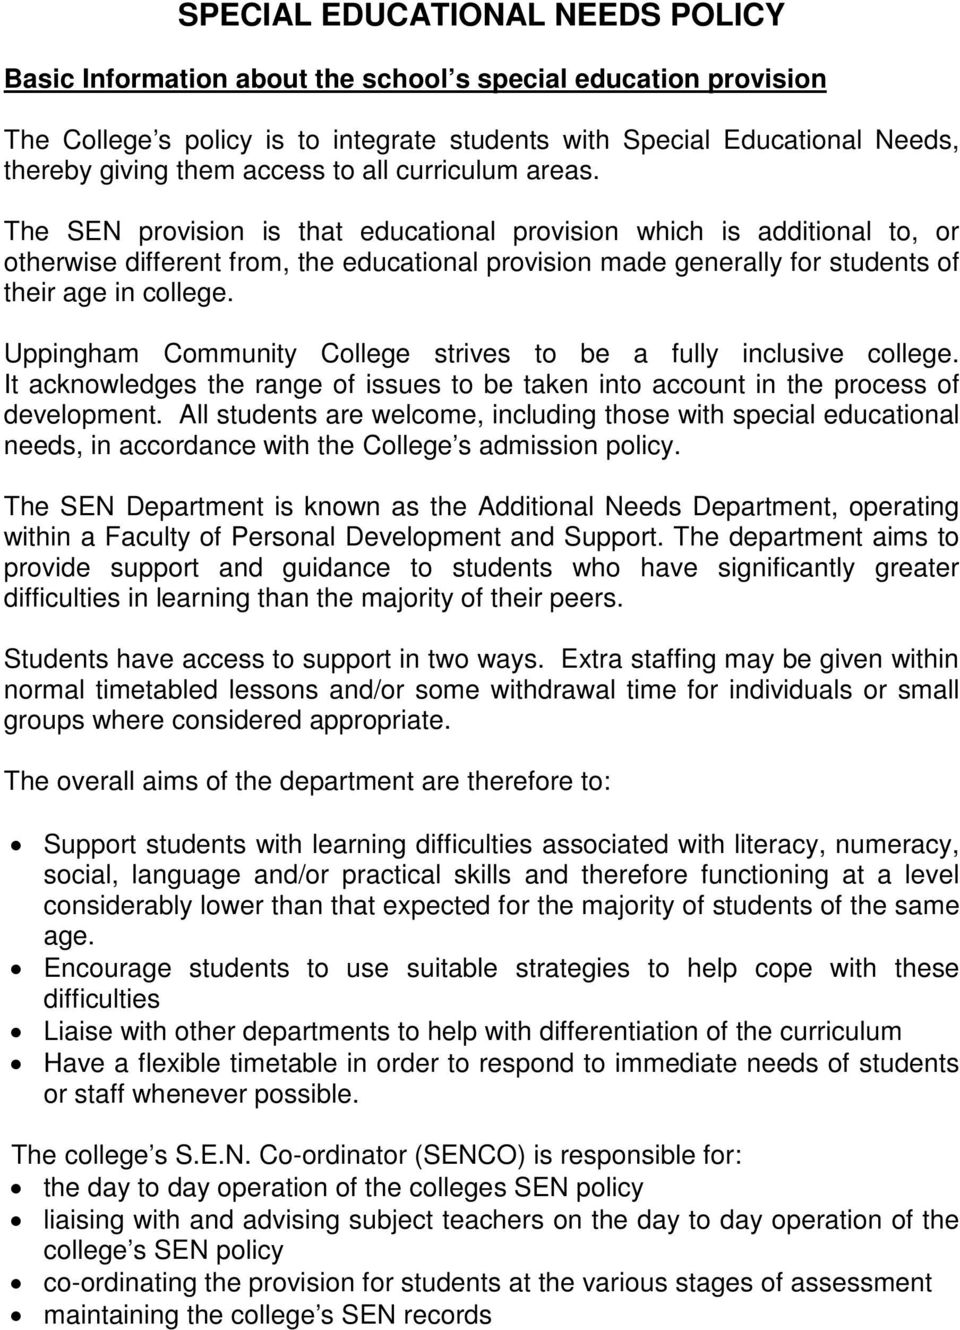 The SEN provision is that educational provision which is additional to, or otherwise different from, the educational provision made generally for students of their age in college.